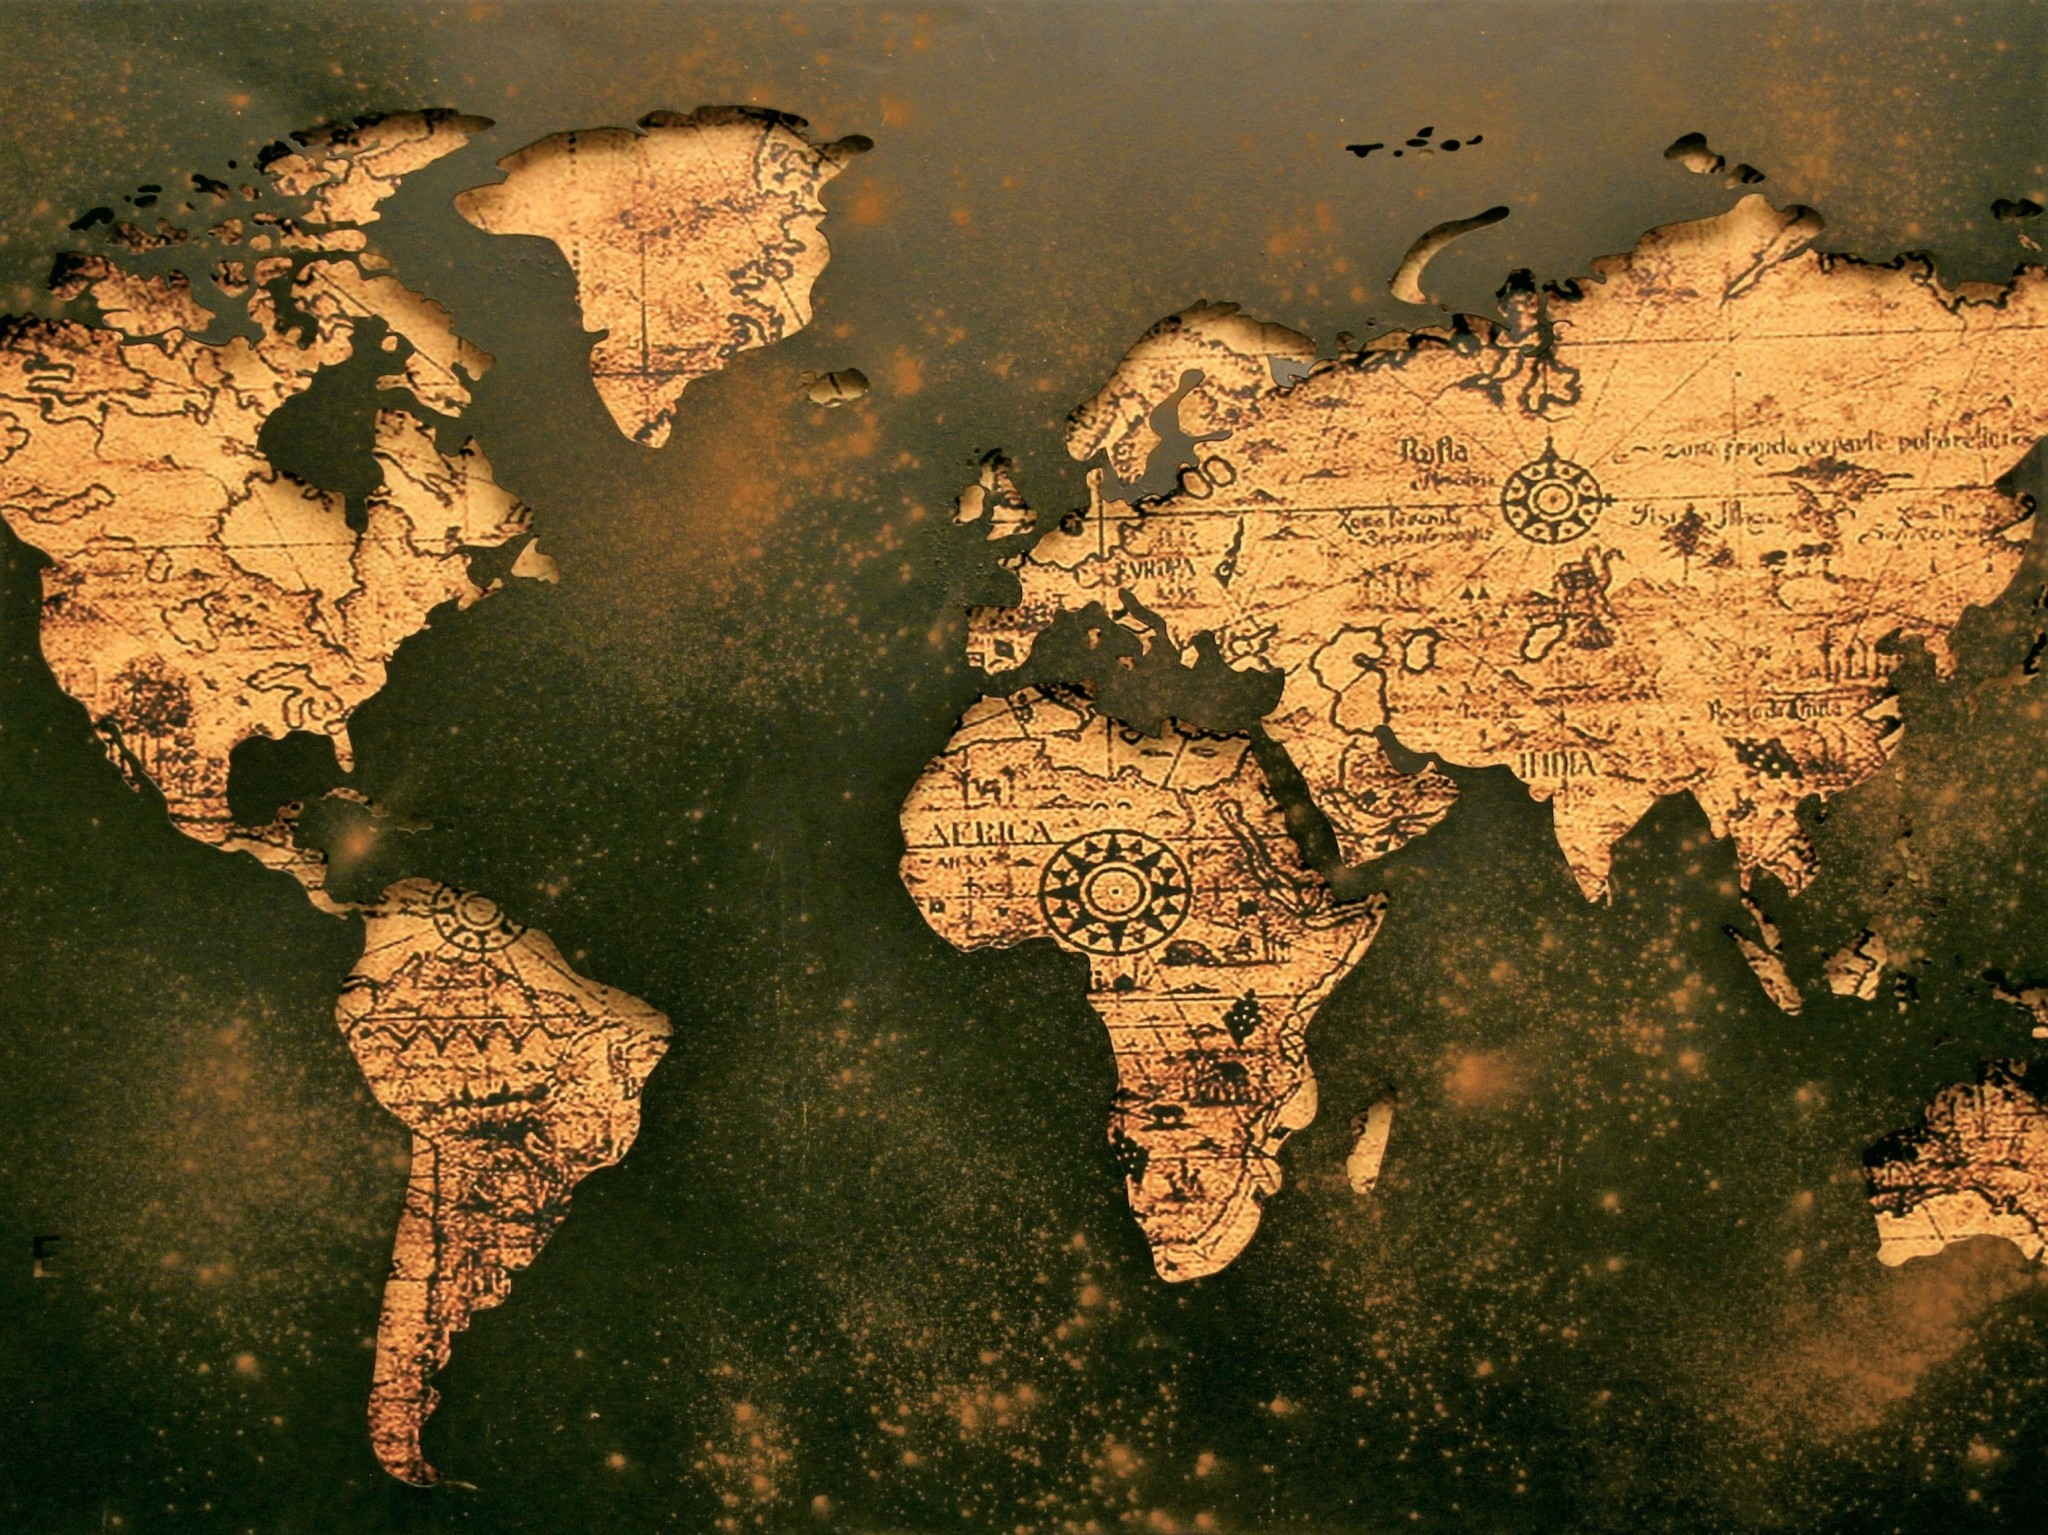 Old map of the world showing countries in gold.